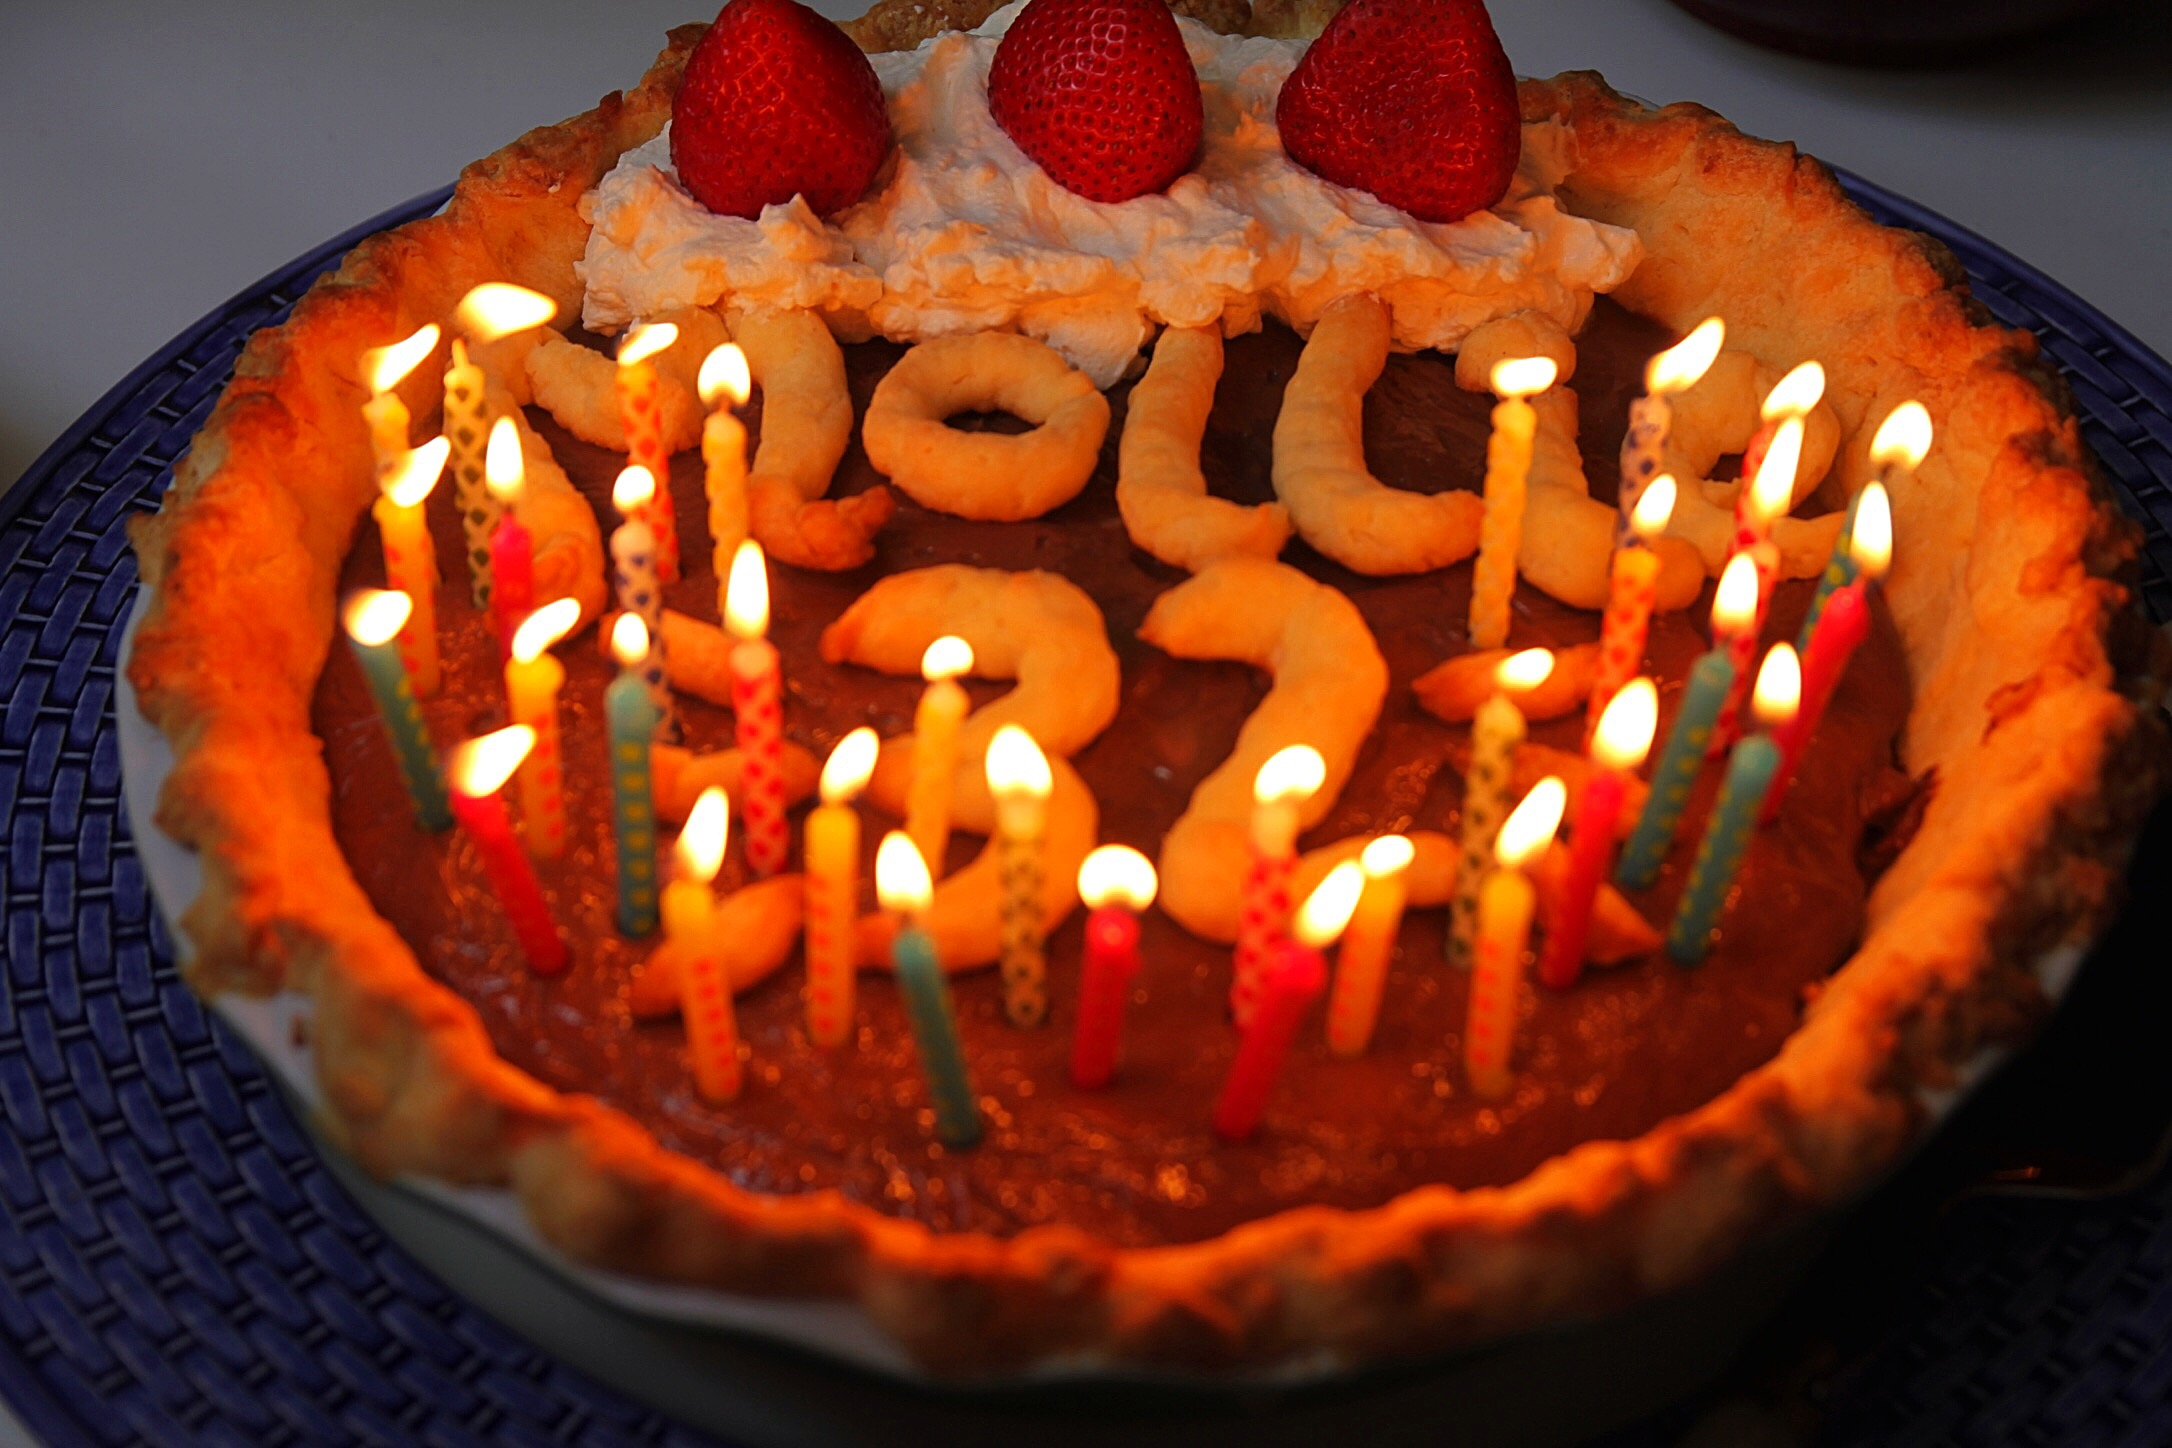 From-scratch gluten free chocolate cream pie - the best ever. My mom makes this for my birthday each year and it's incredible. And there are 33 candles on it because you need one for good luck! ;)